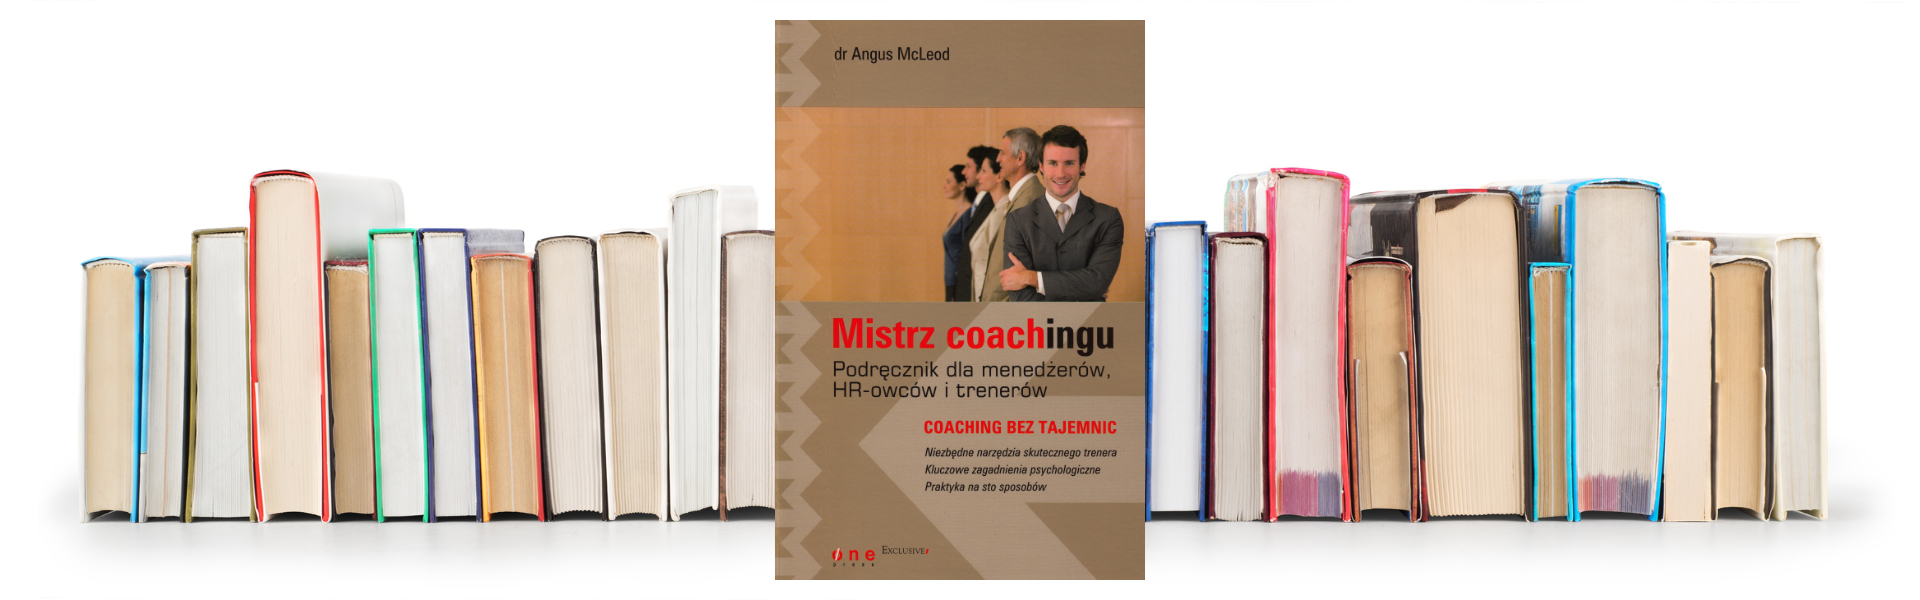 Mistrz coachingu